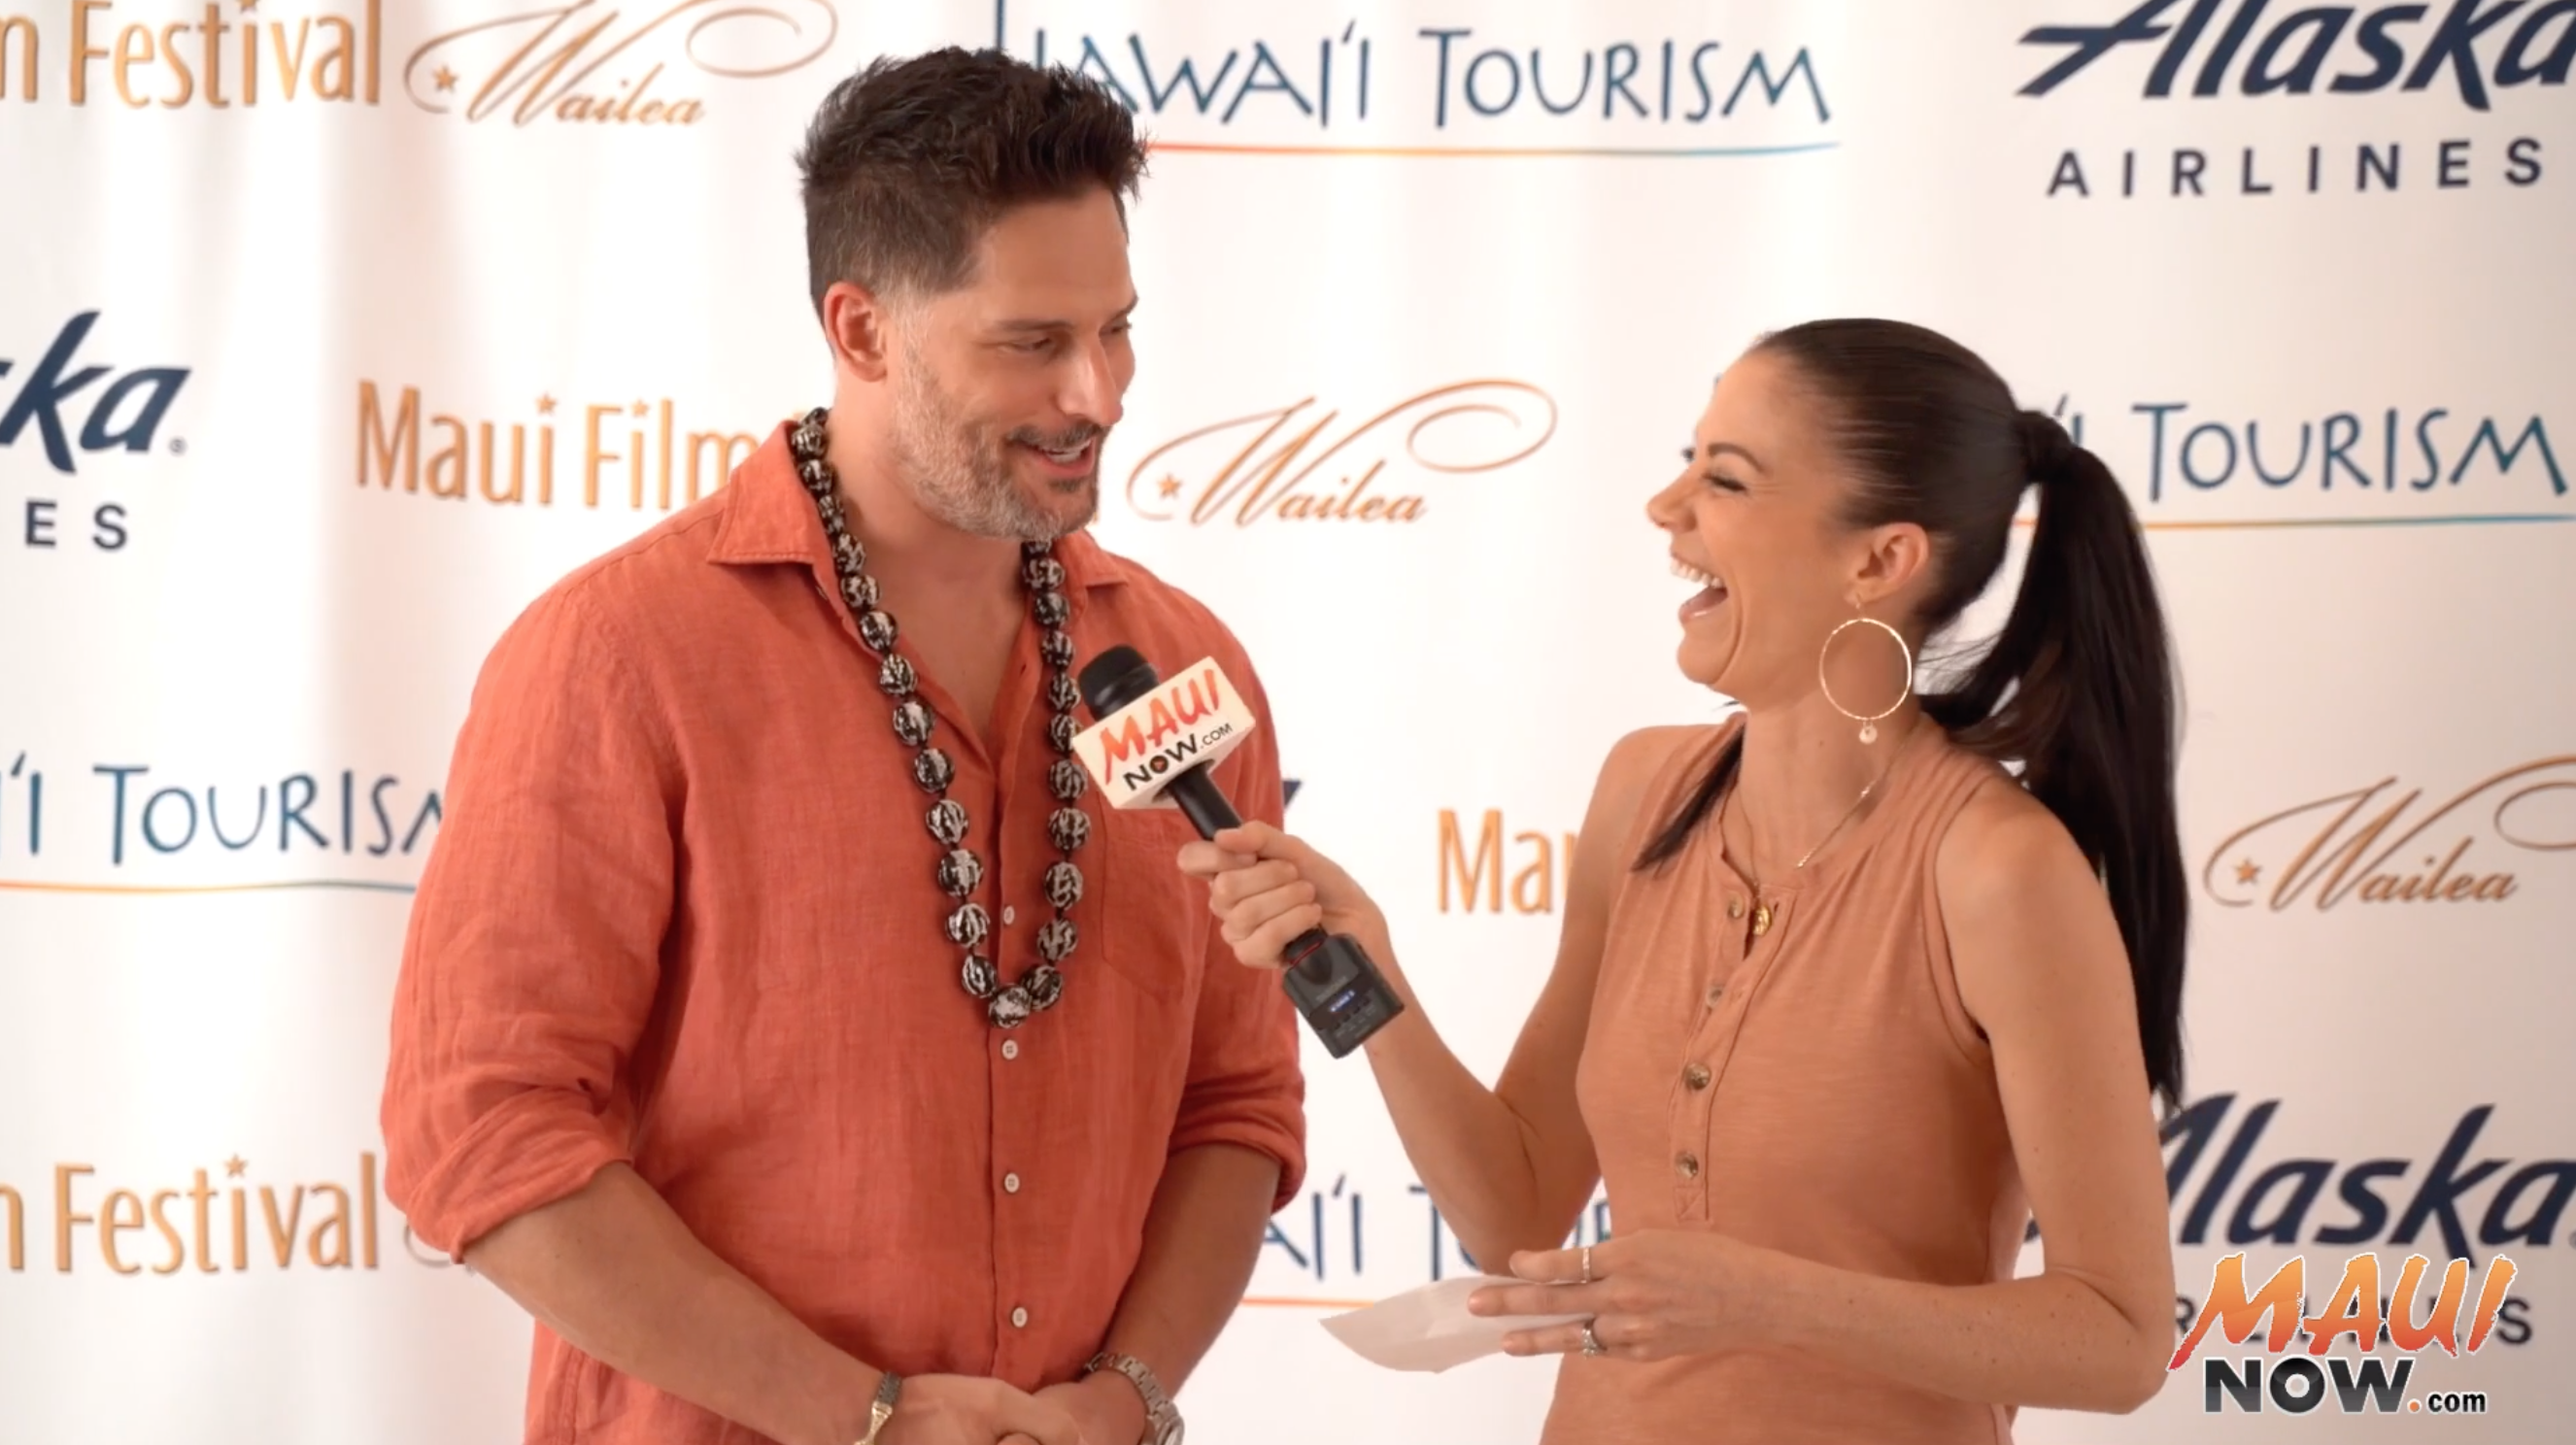 Malika Interviews Joe Manganiello, Maui Film Festival Shooting Star Recipient